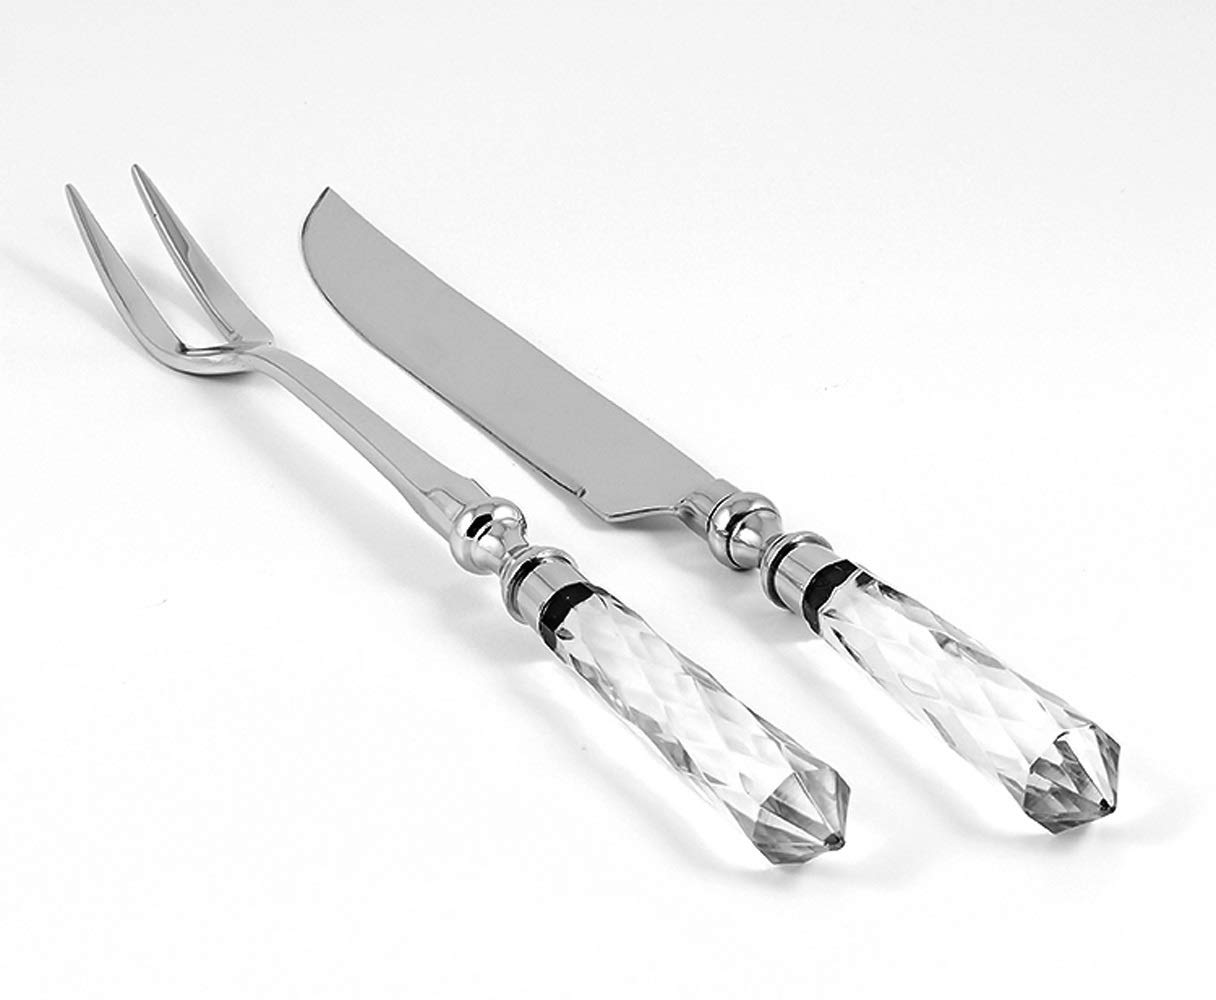 Carving 2 Pc Set - Knife 14'' Long - Two Tined Fork 13'' Long - Crystal Handle - Beautiful Gift Box - by Barski - Made in Europe